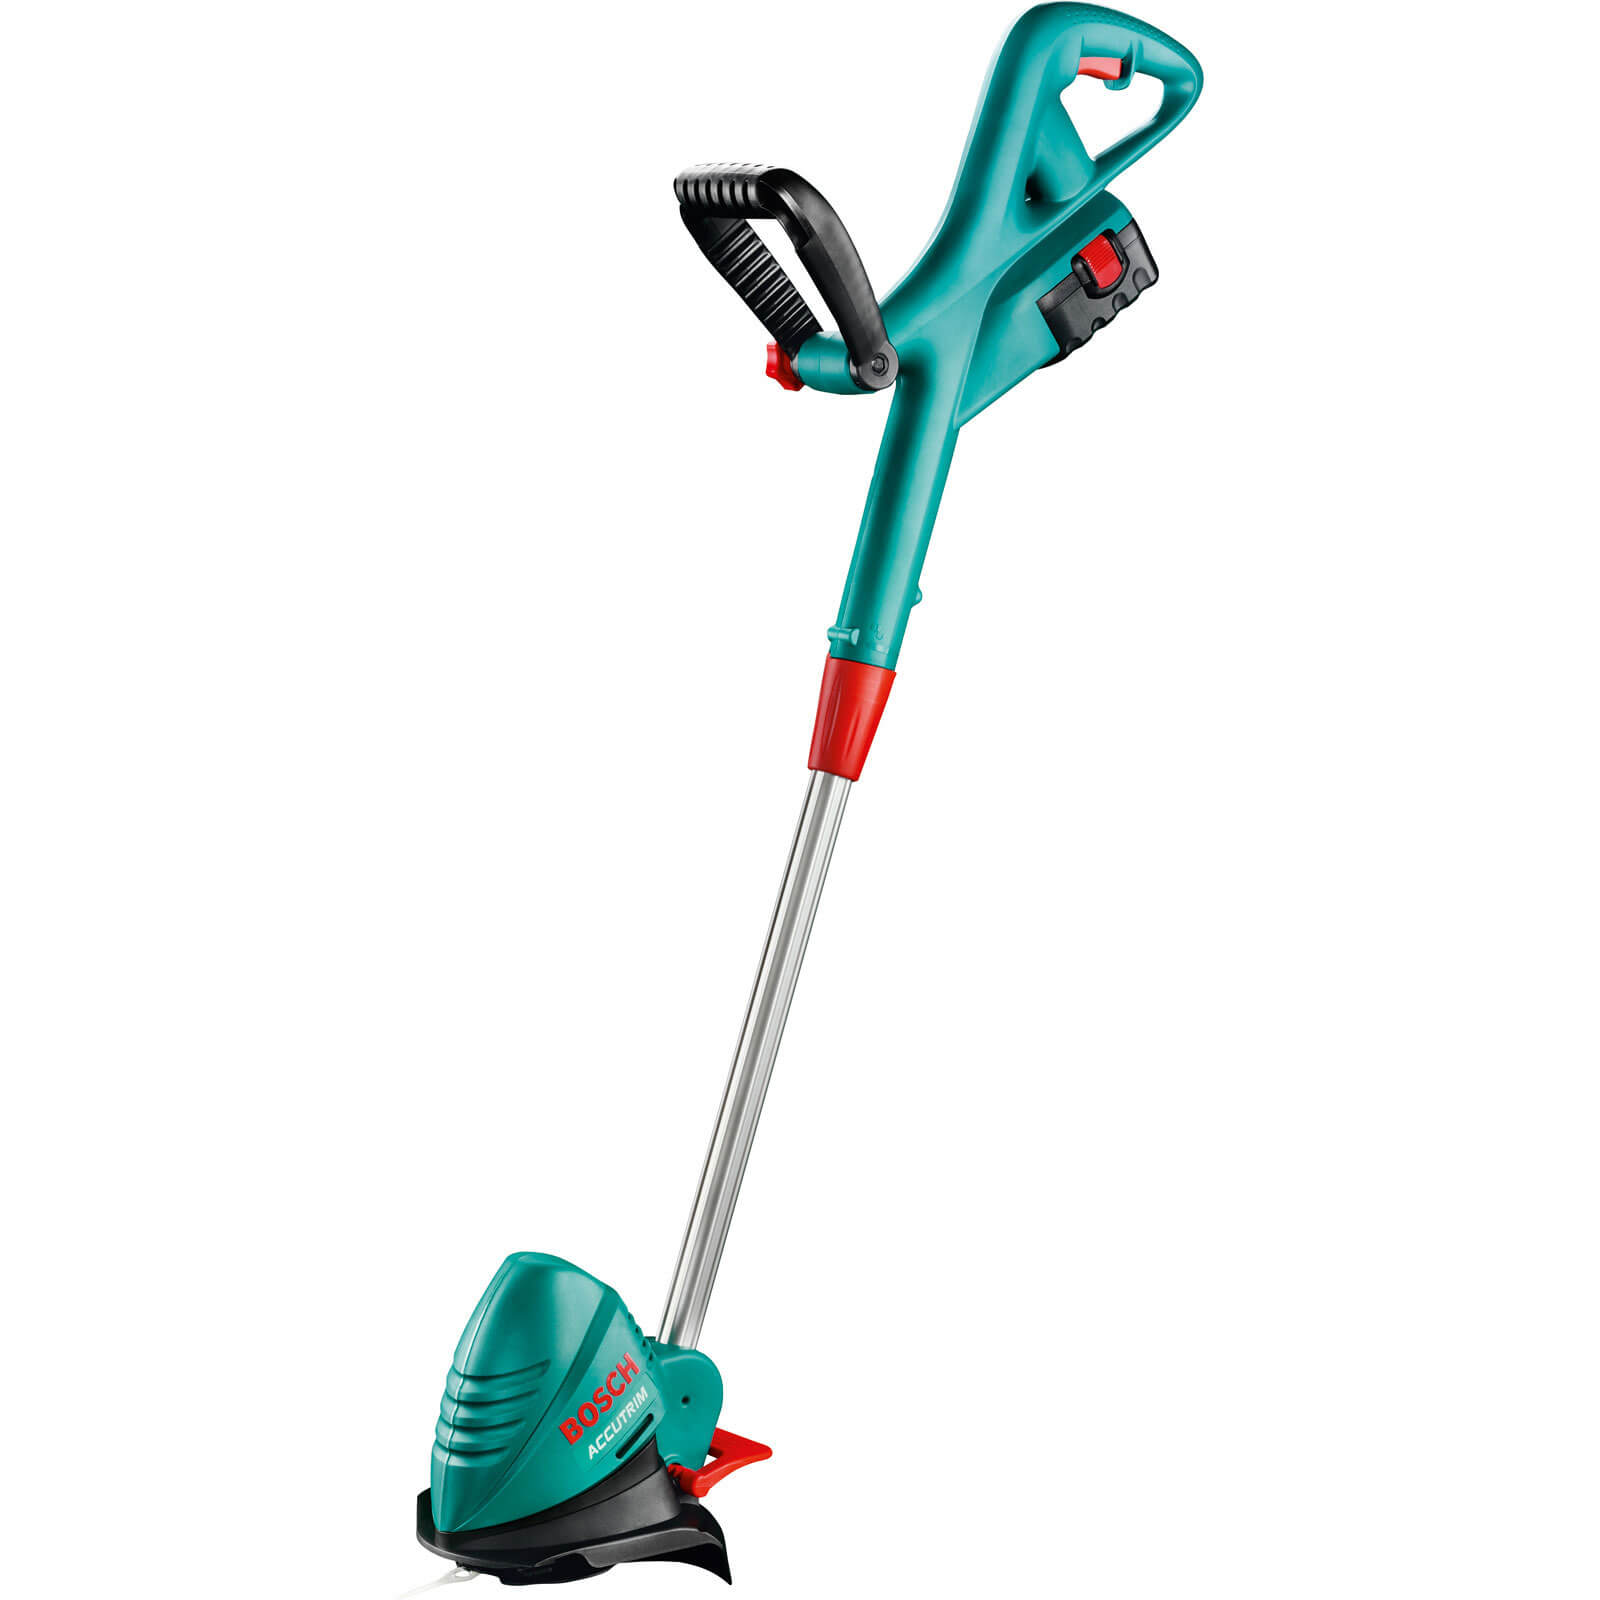 Bosch ART 23 Accutrim 18v Cordless Grass Trimmer 230mm Cut Width + 1 Battery